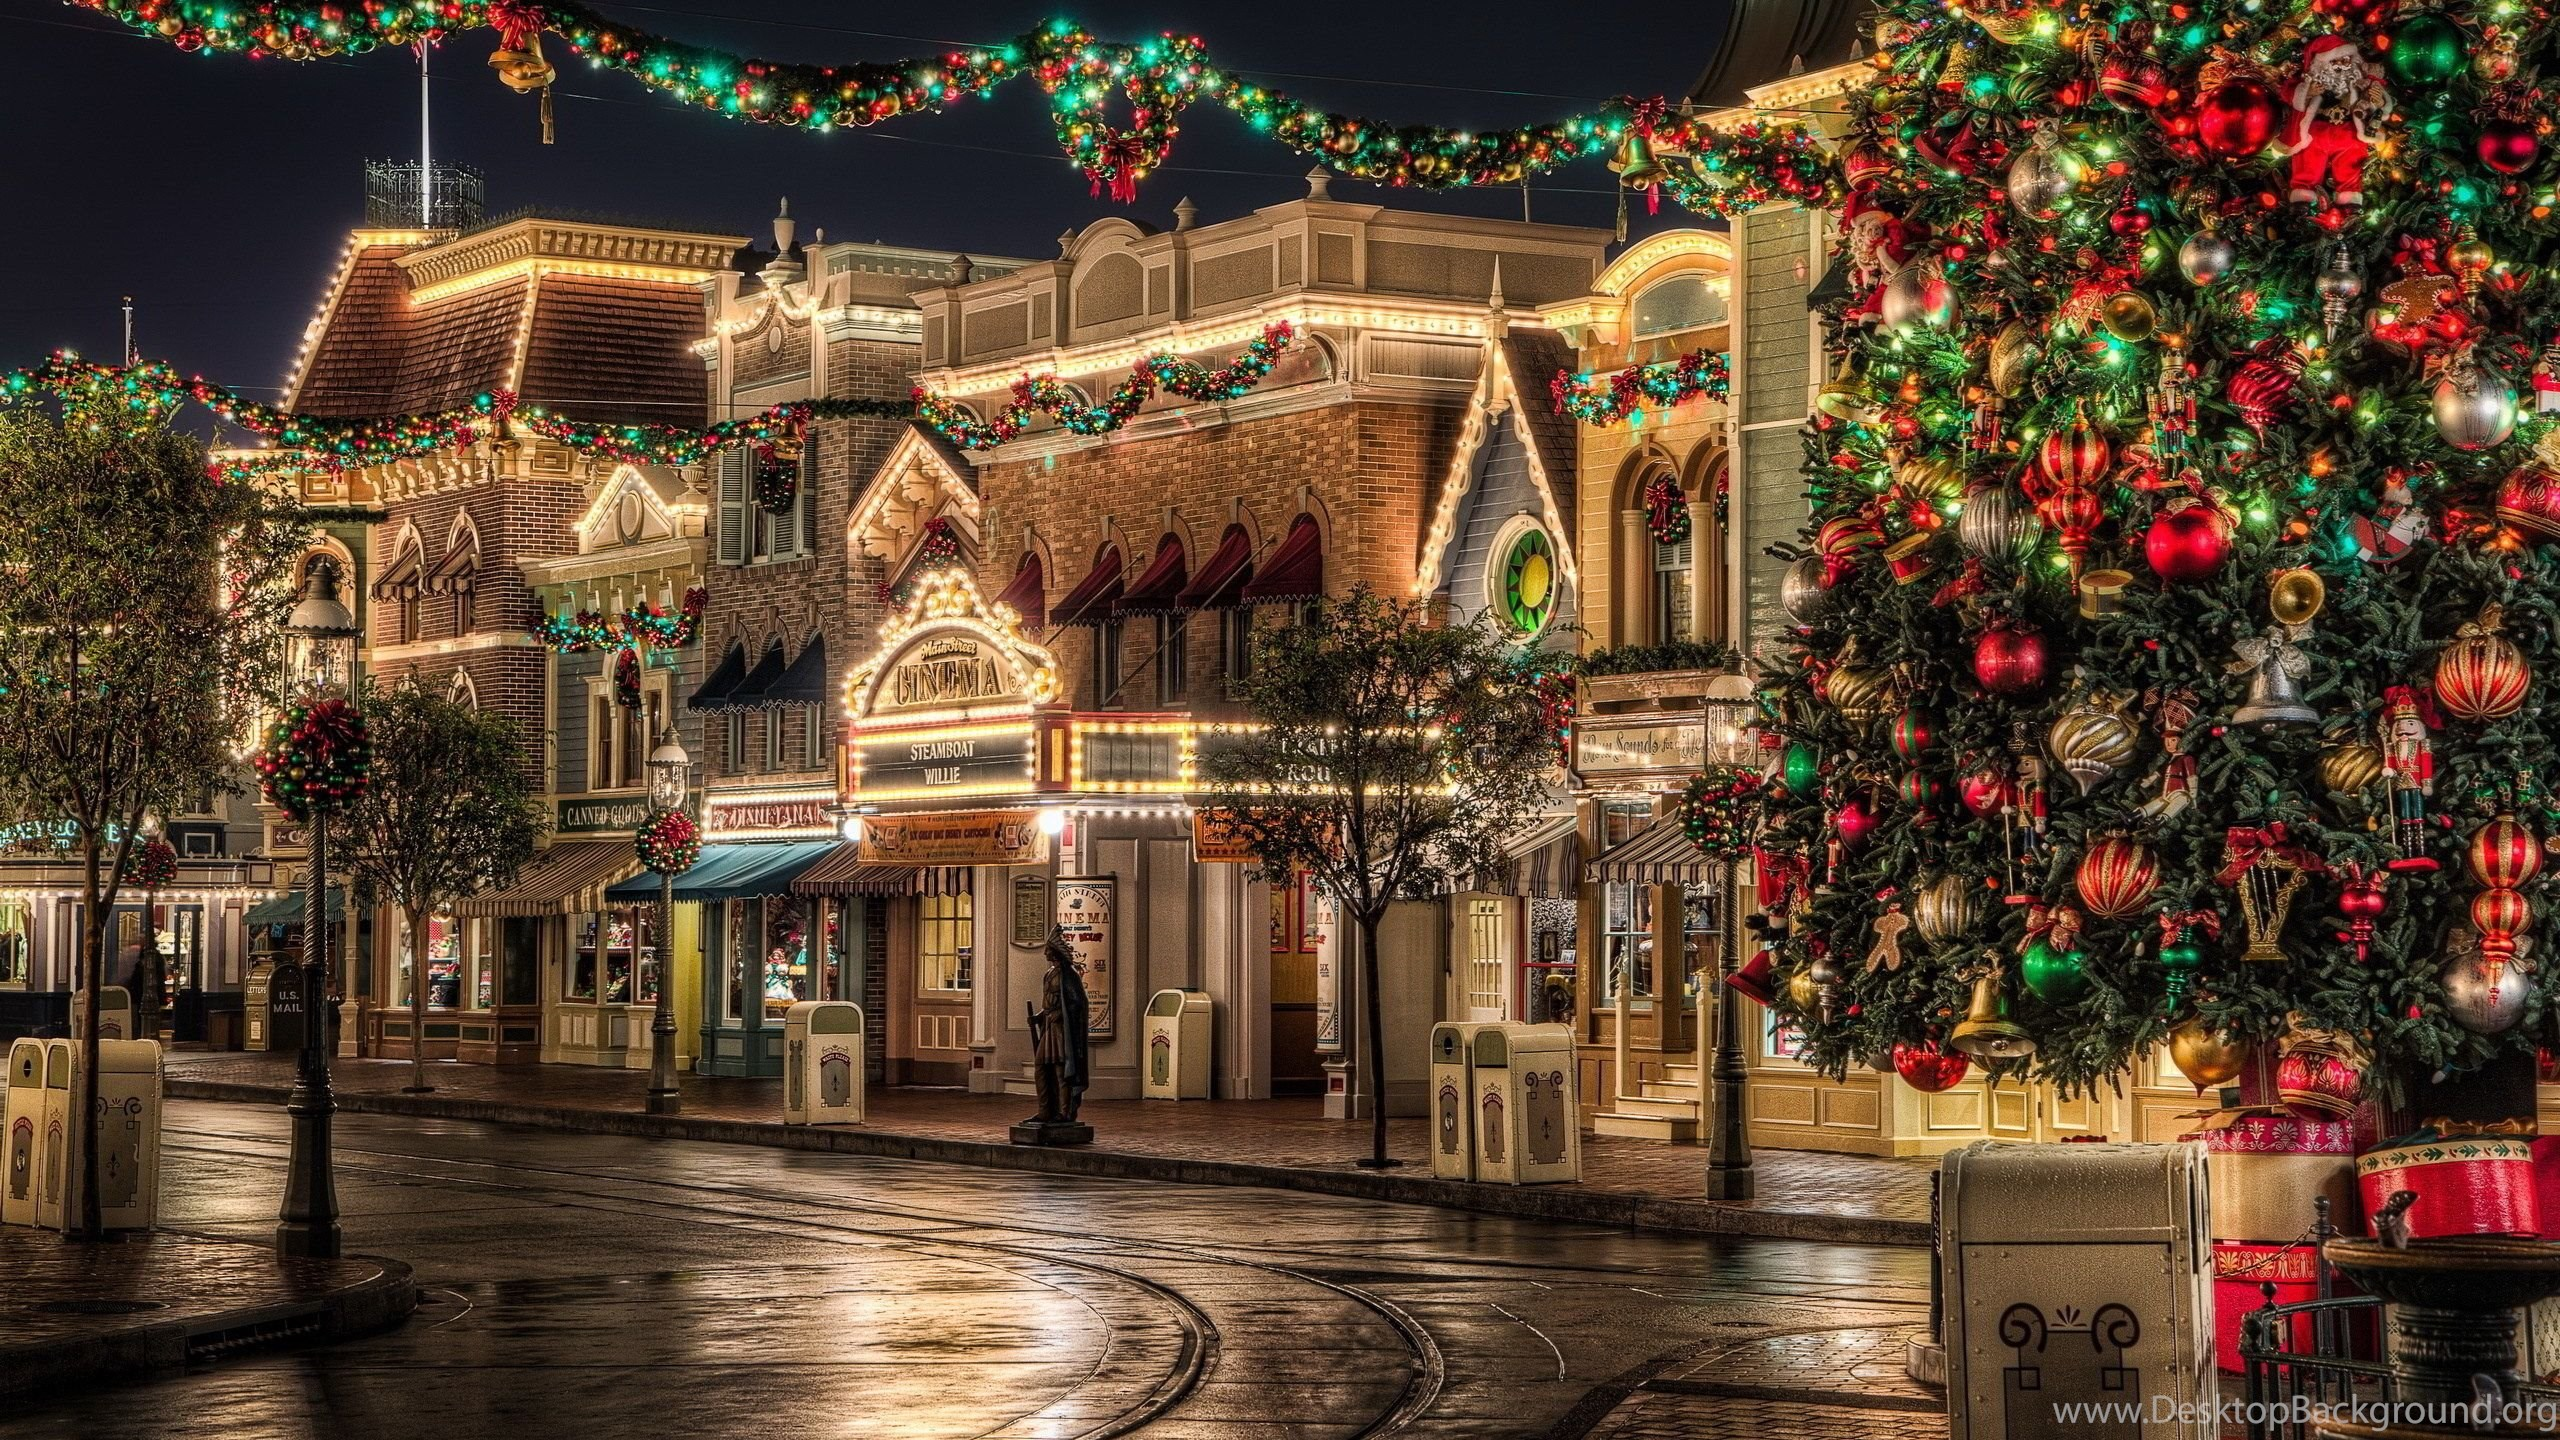 anaheim california xmas wallpapers desktop background